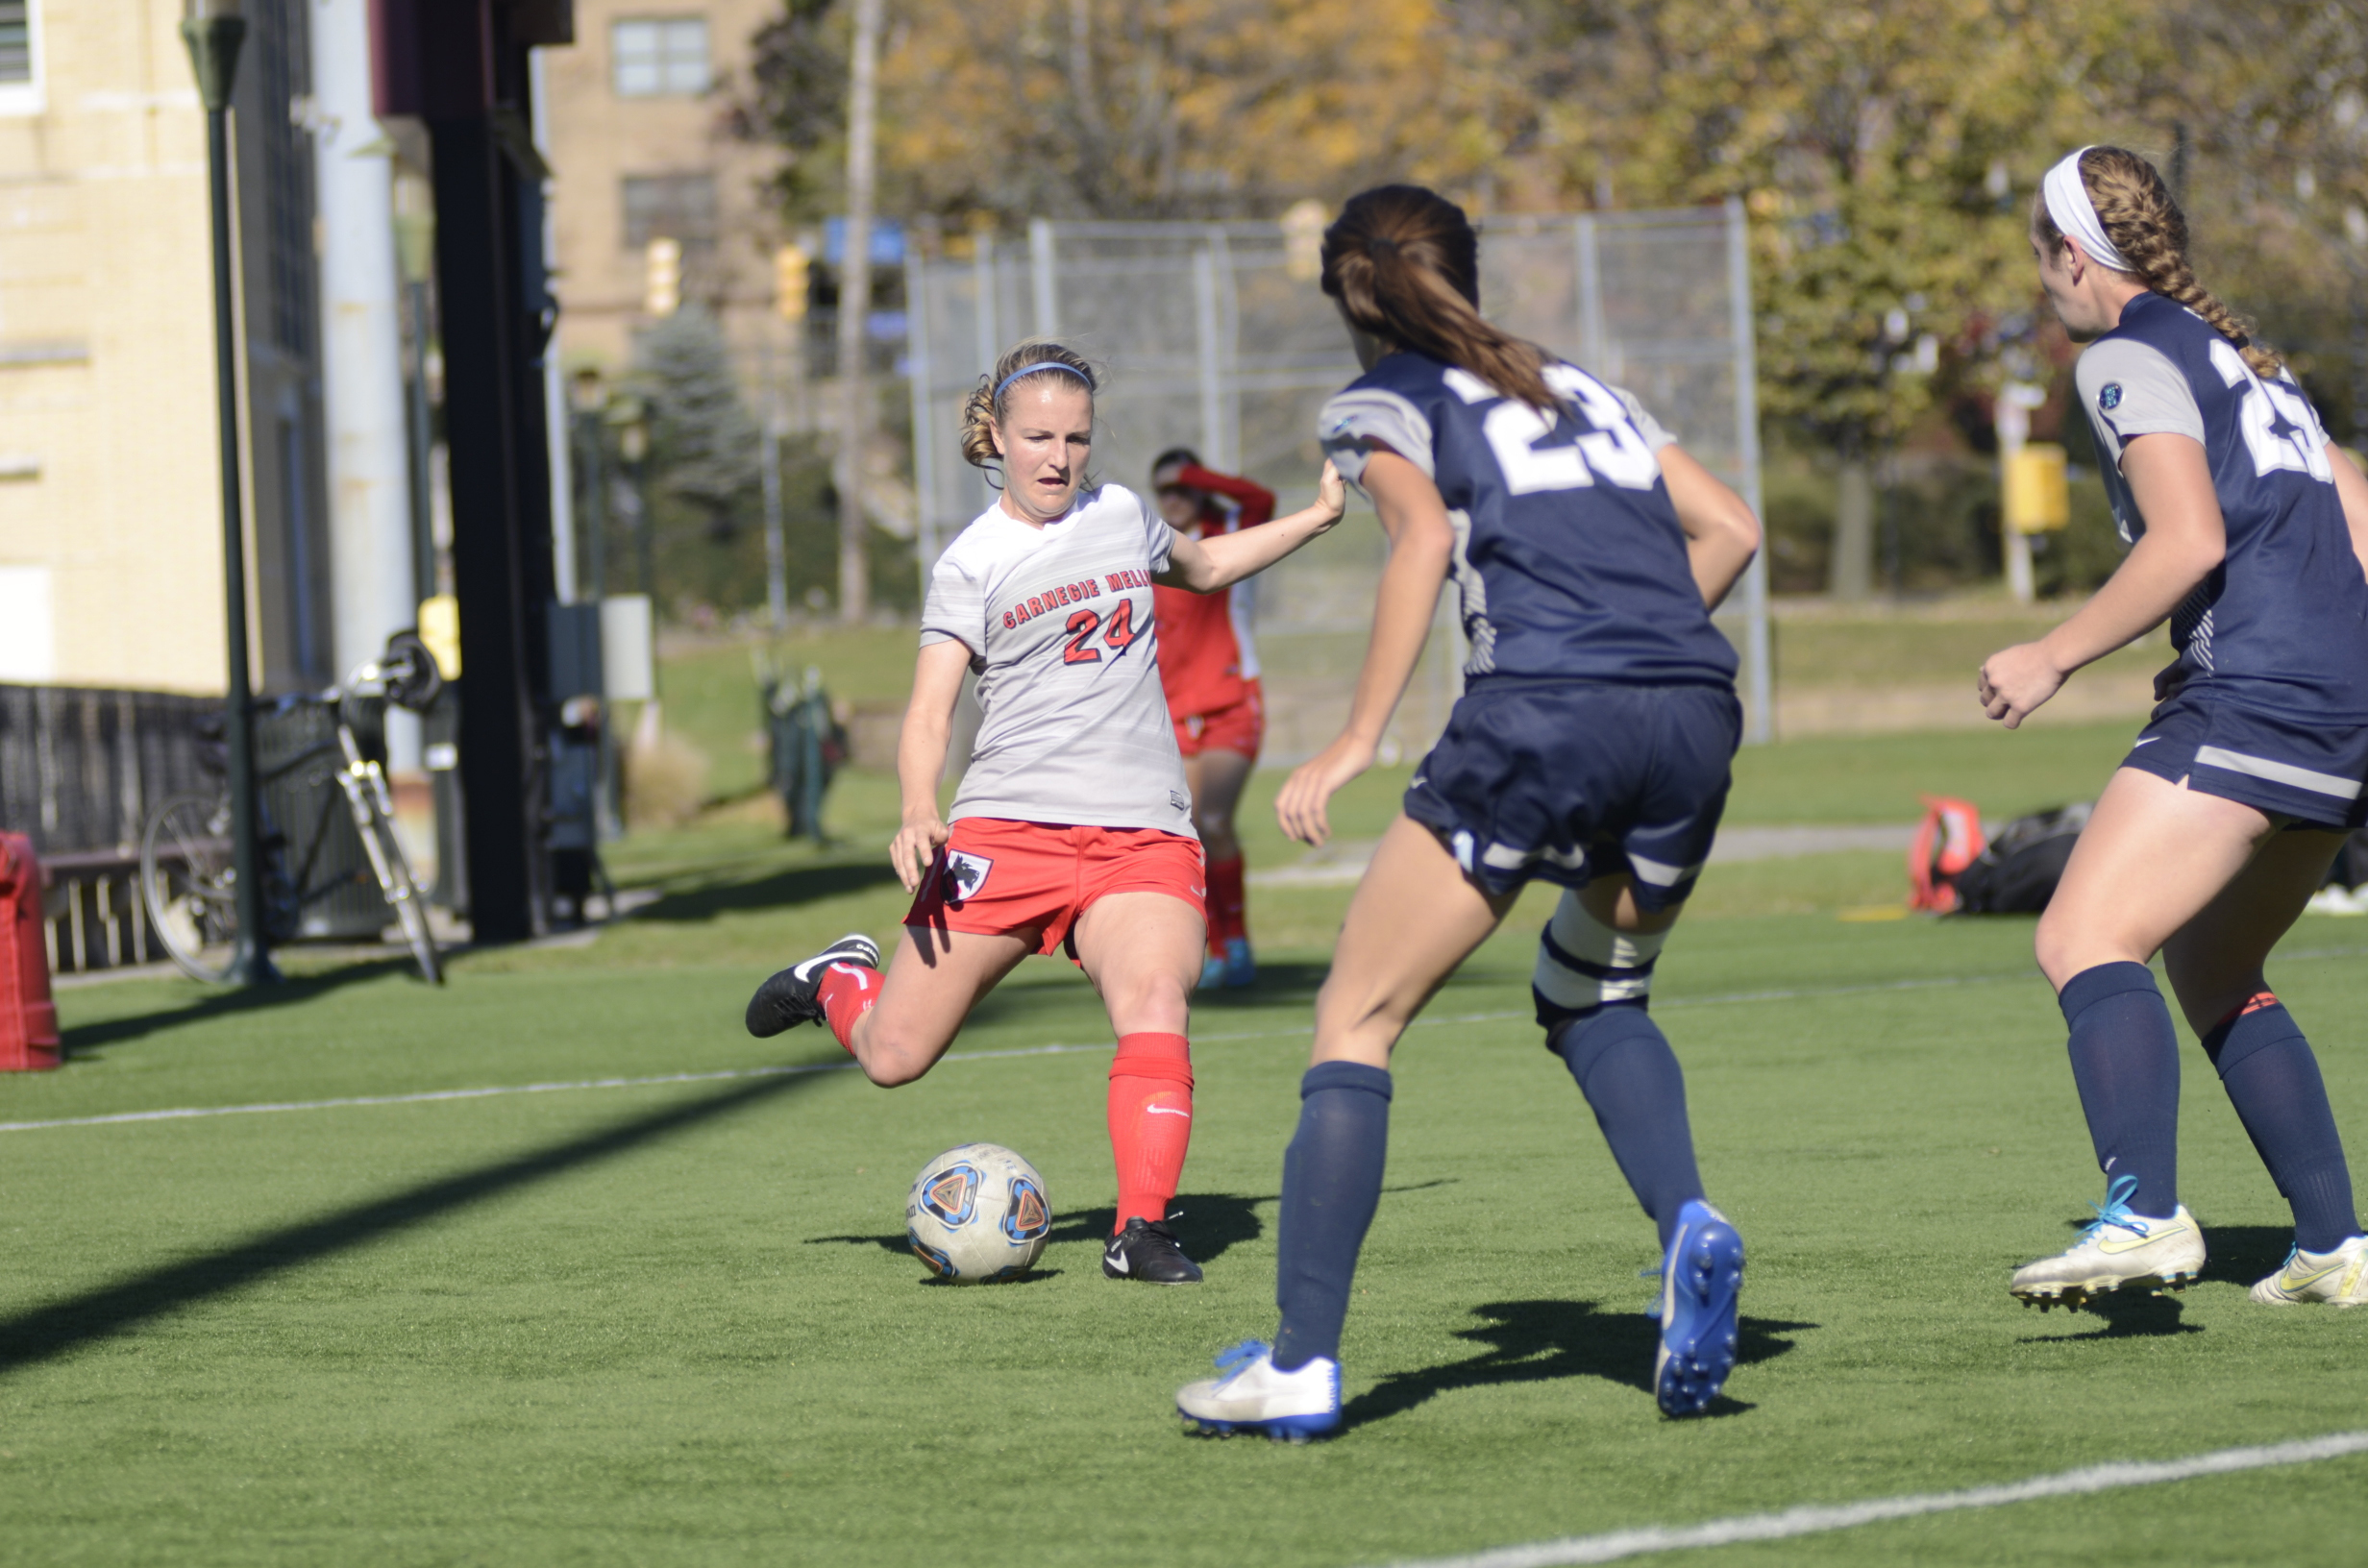 Junior midfielder Morgan Kontor winds up to strike a forward pass through the legs of a defender on Saturday. (credit: Mark Egge/)